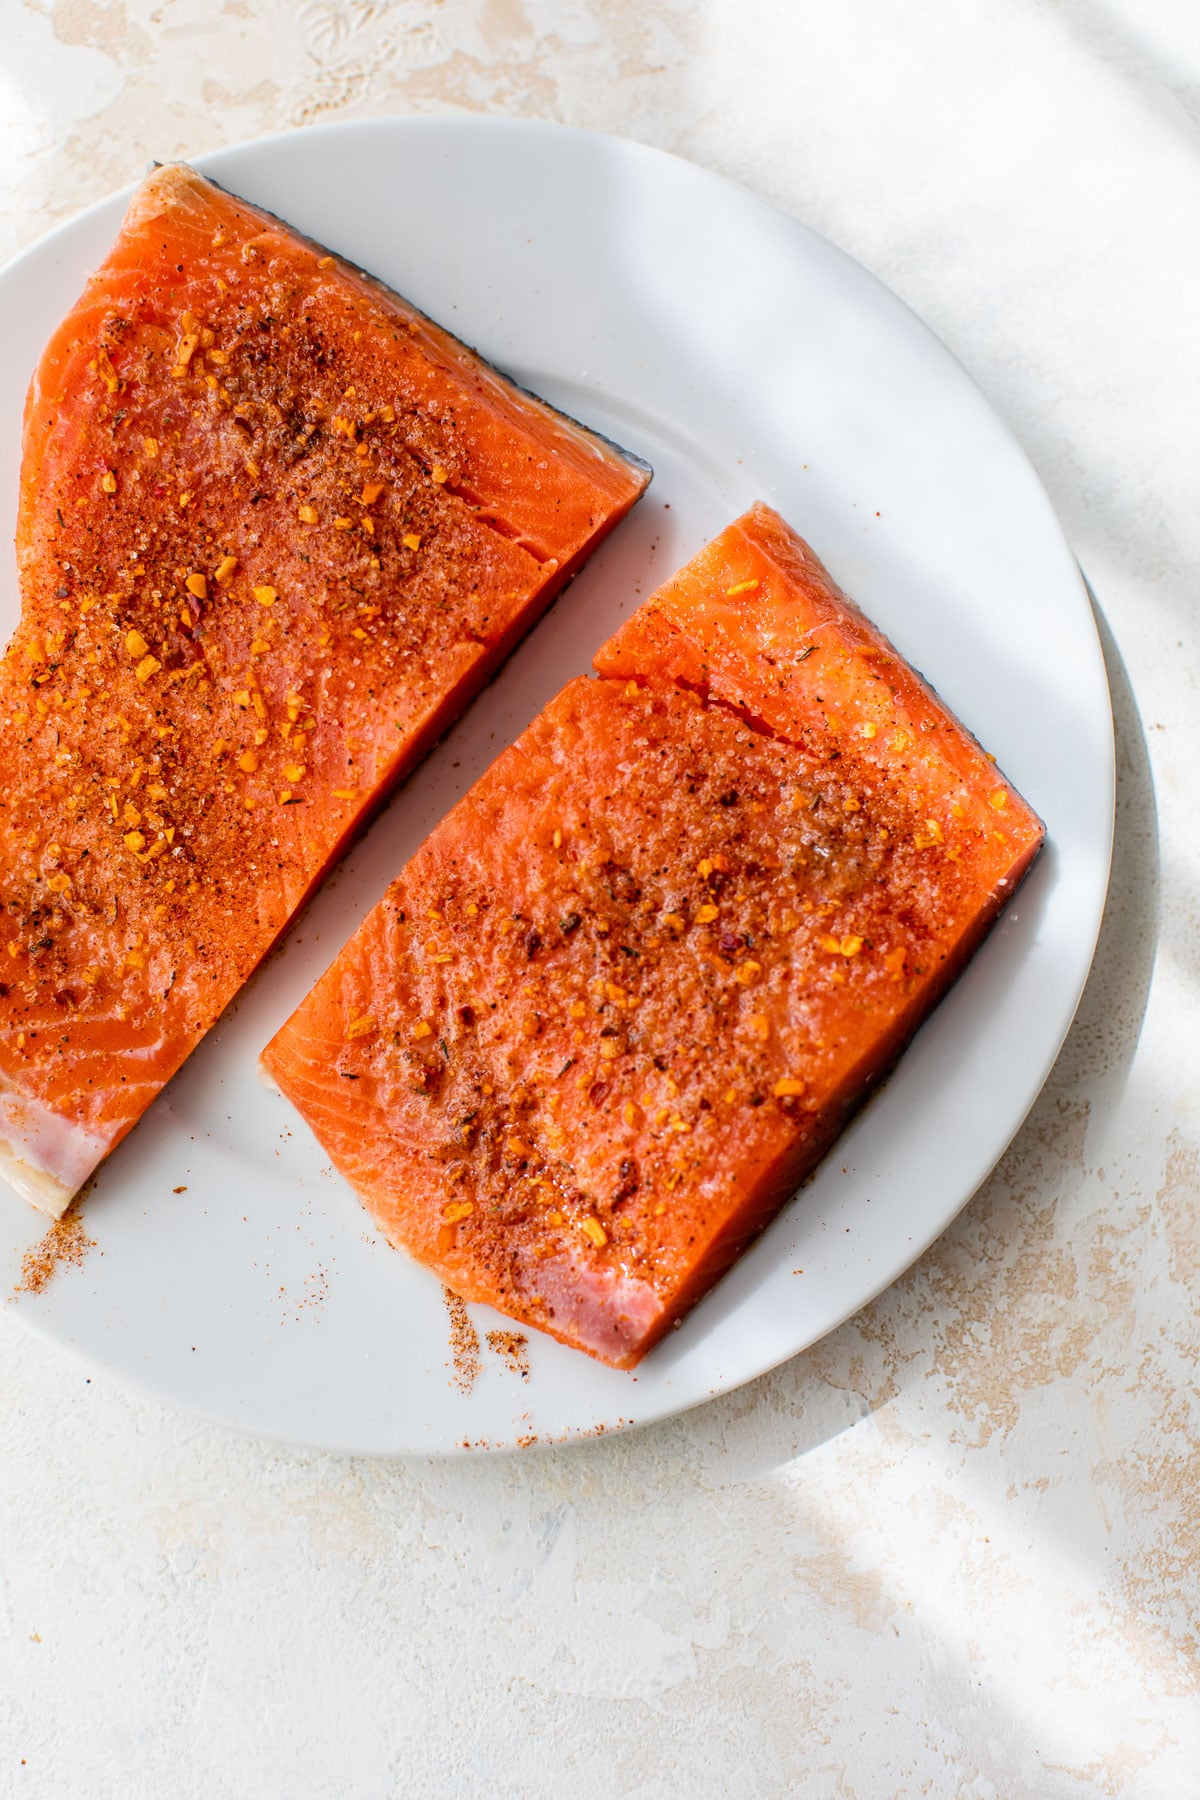 two raw salmon fillets on a white plate topped with seasoning